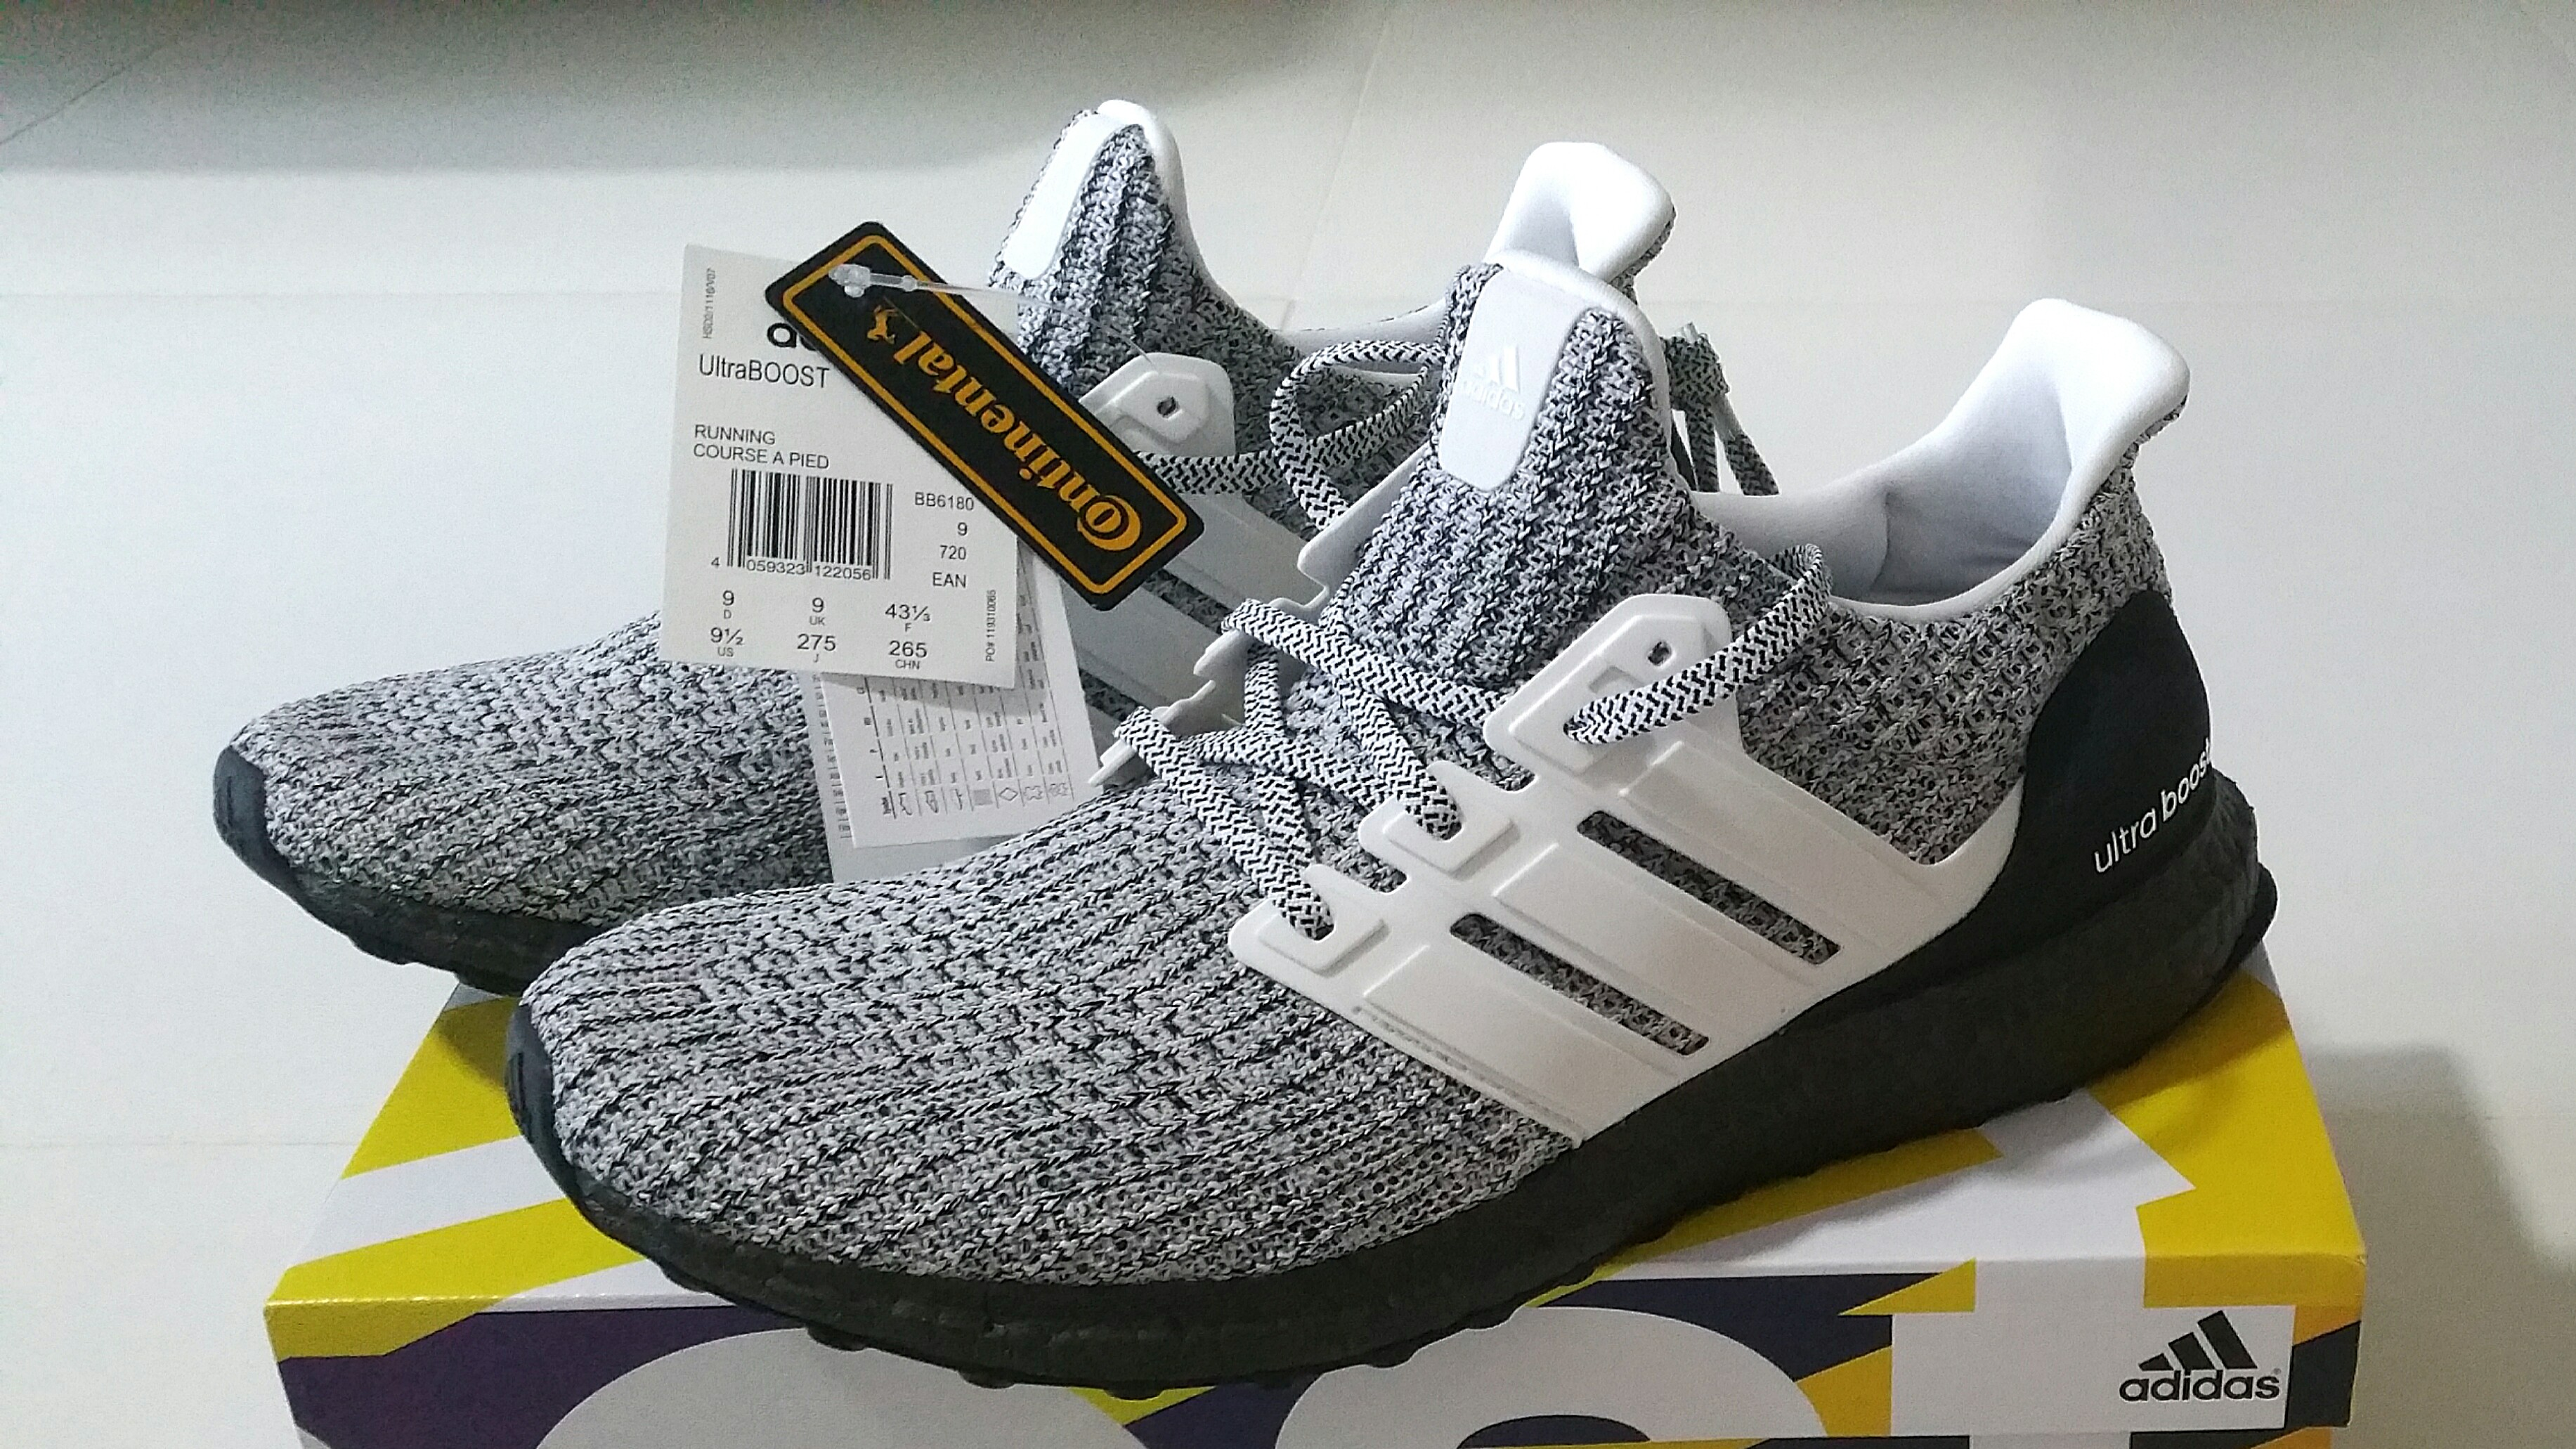 eaee6a446 Adidas Ultra Boost Ultraboost 4.0 Cookies Cream Oreo Black White ...